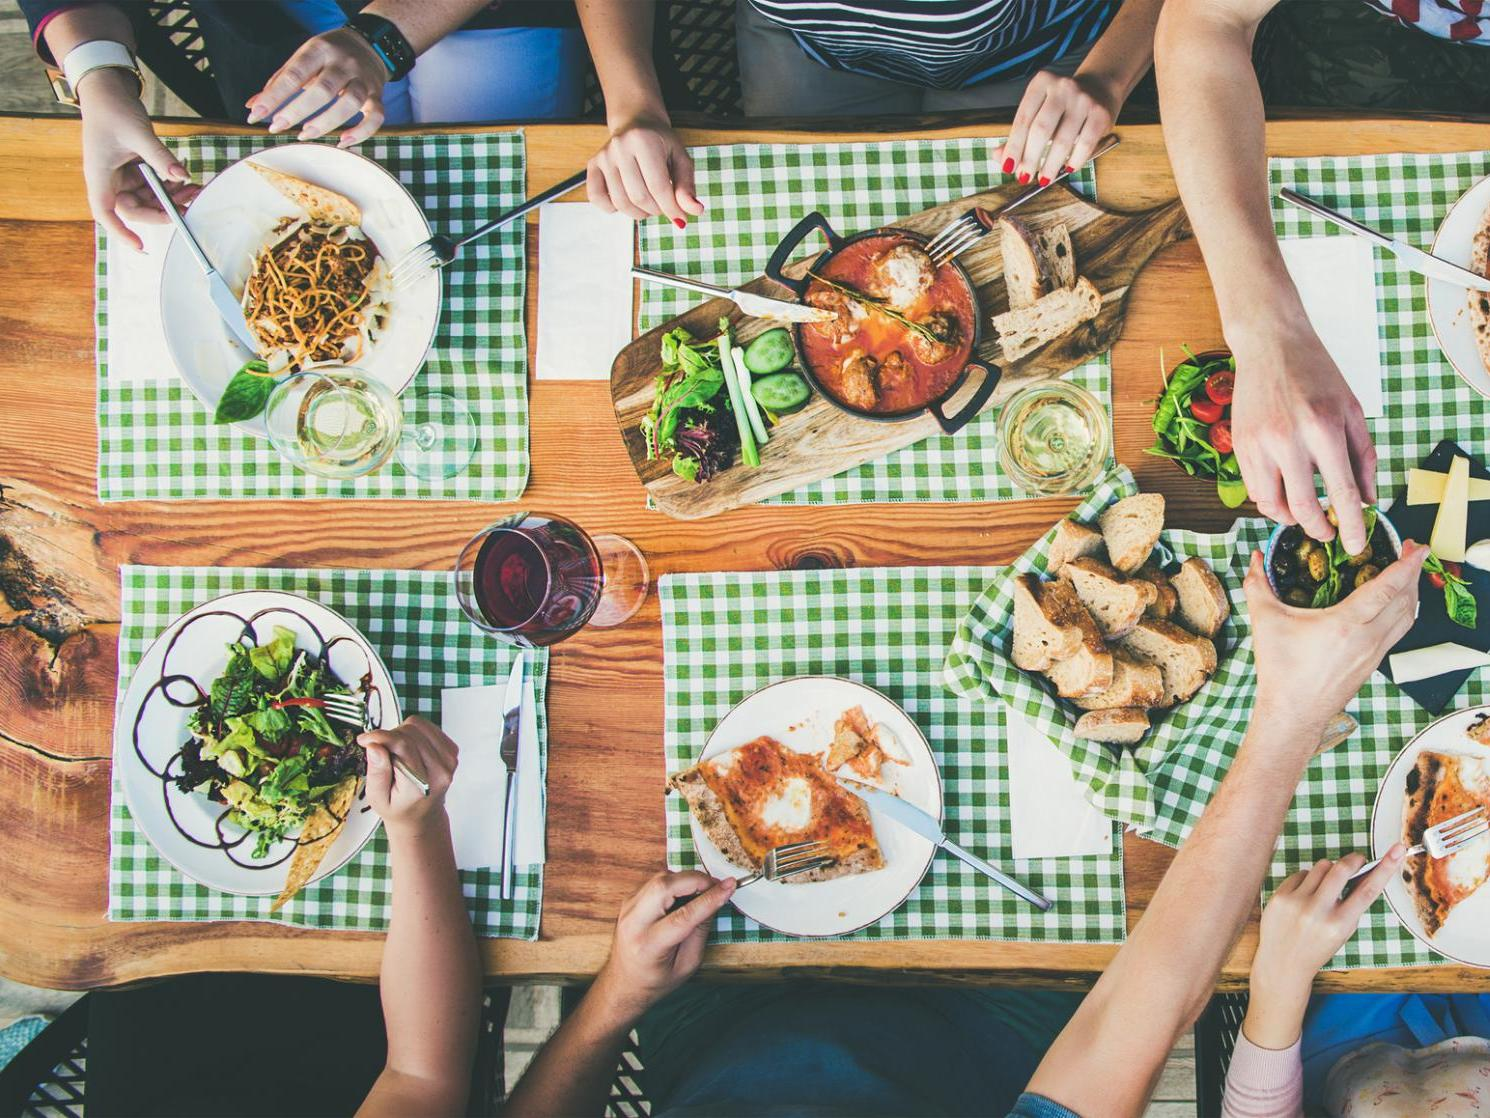 Average adult enjoys eight meals per week from international